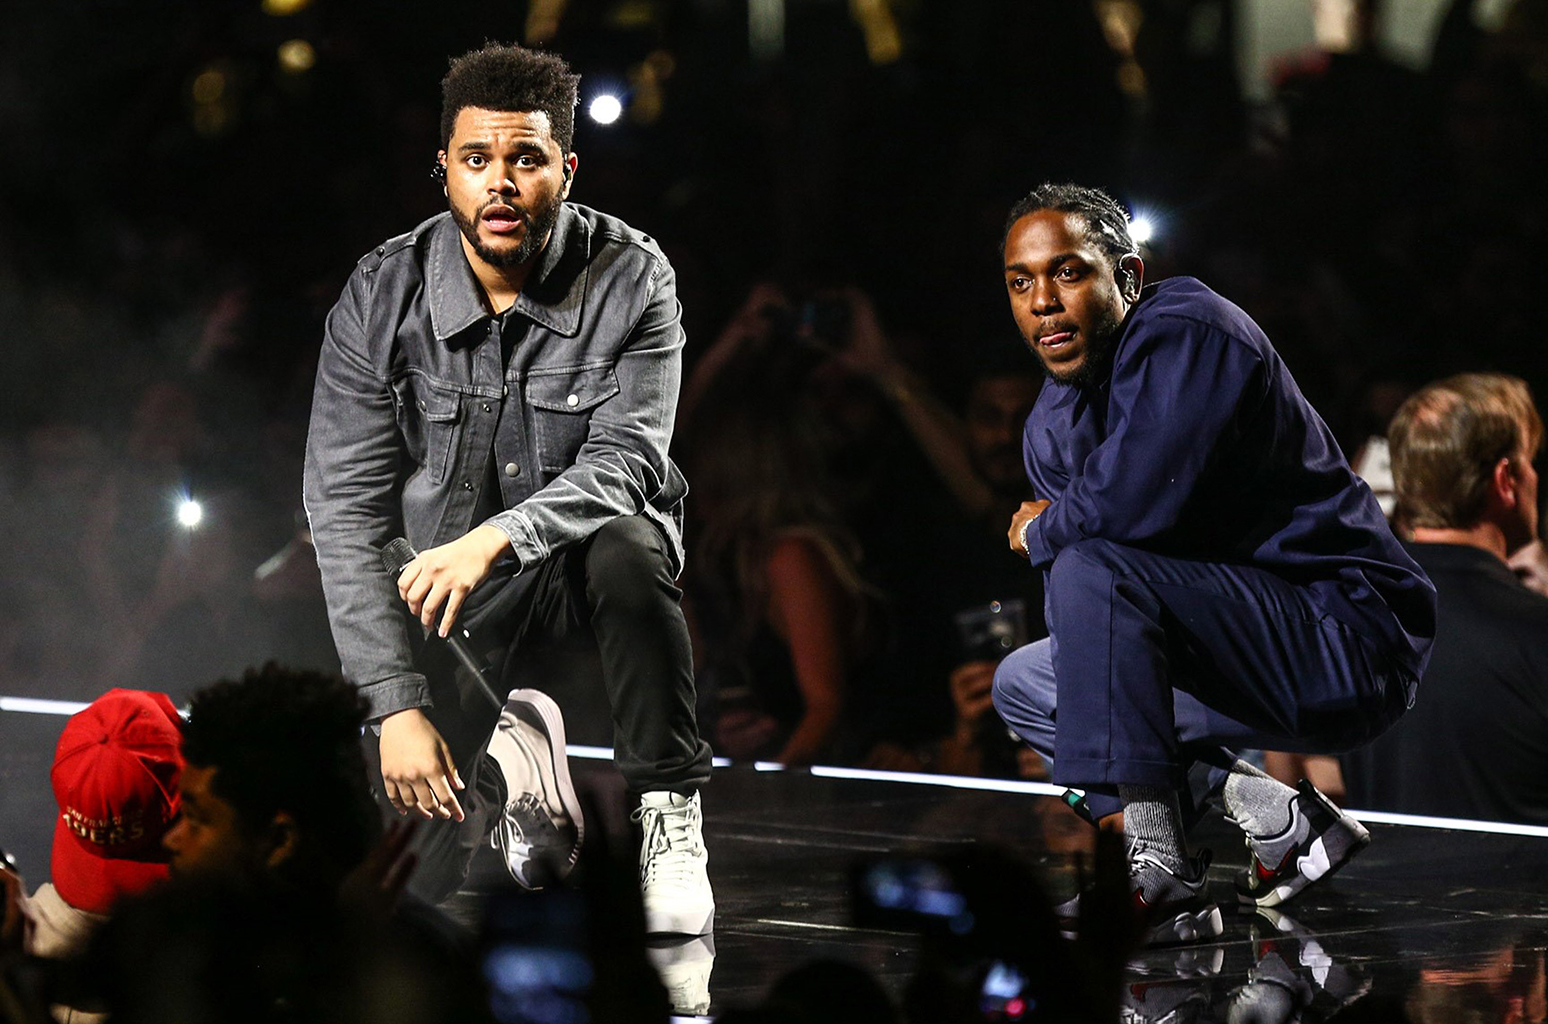 The Weeknd & Kendrick Lamar: 'Pray for Me' Stream, Lyrics, & Download